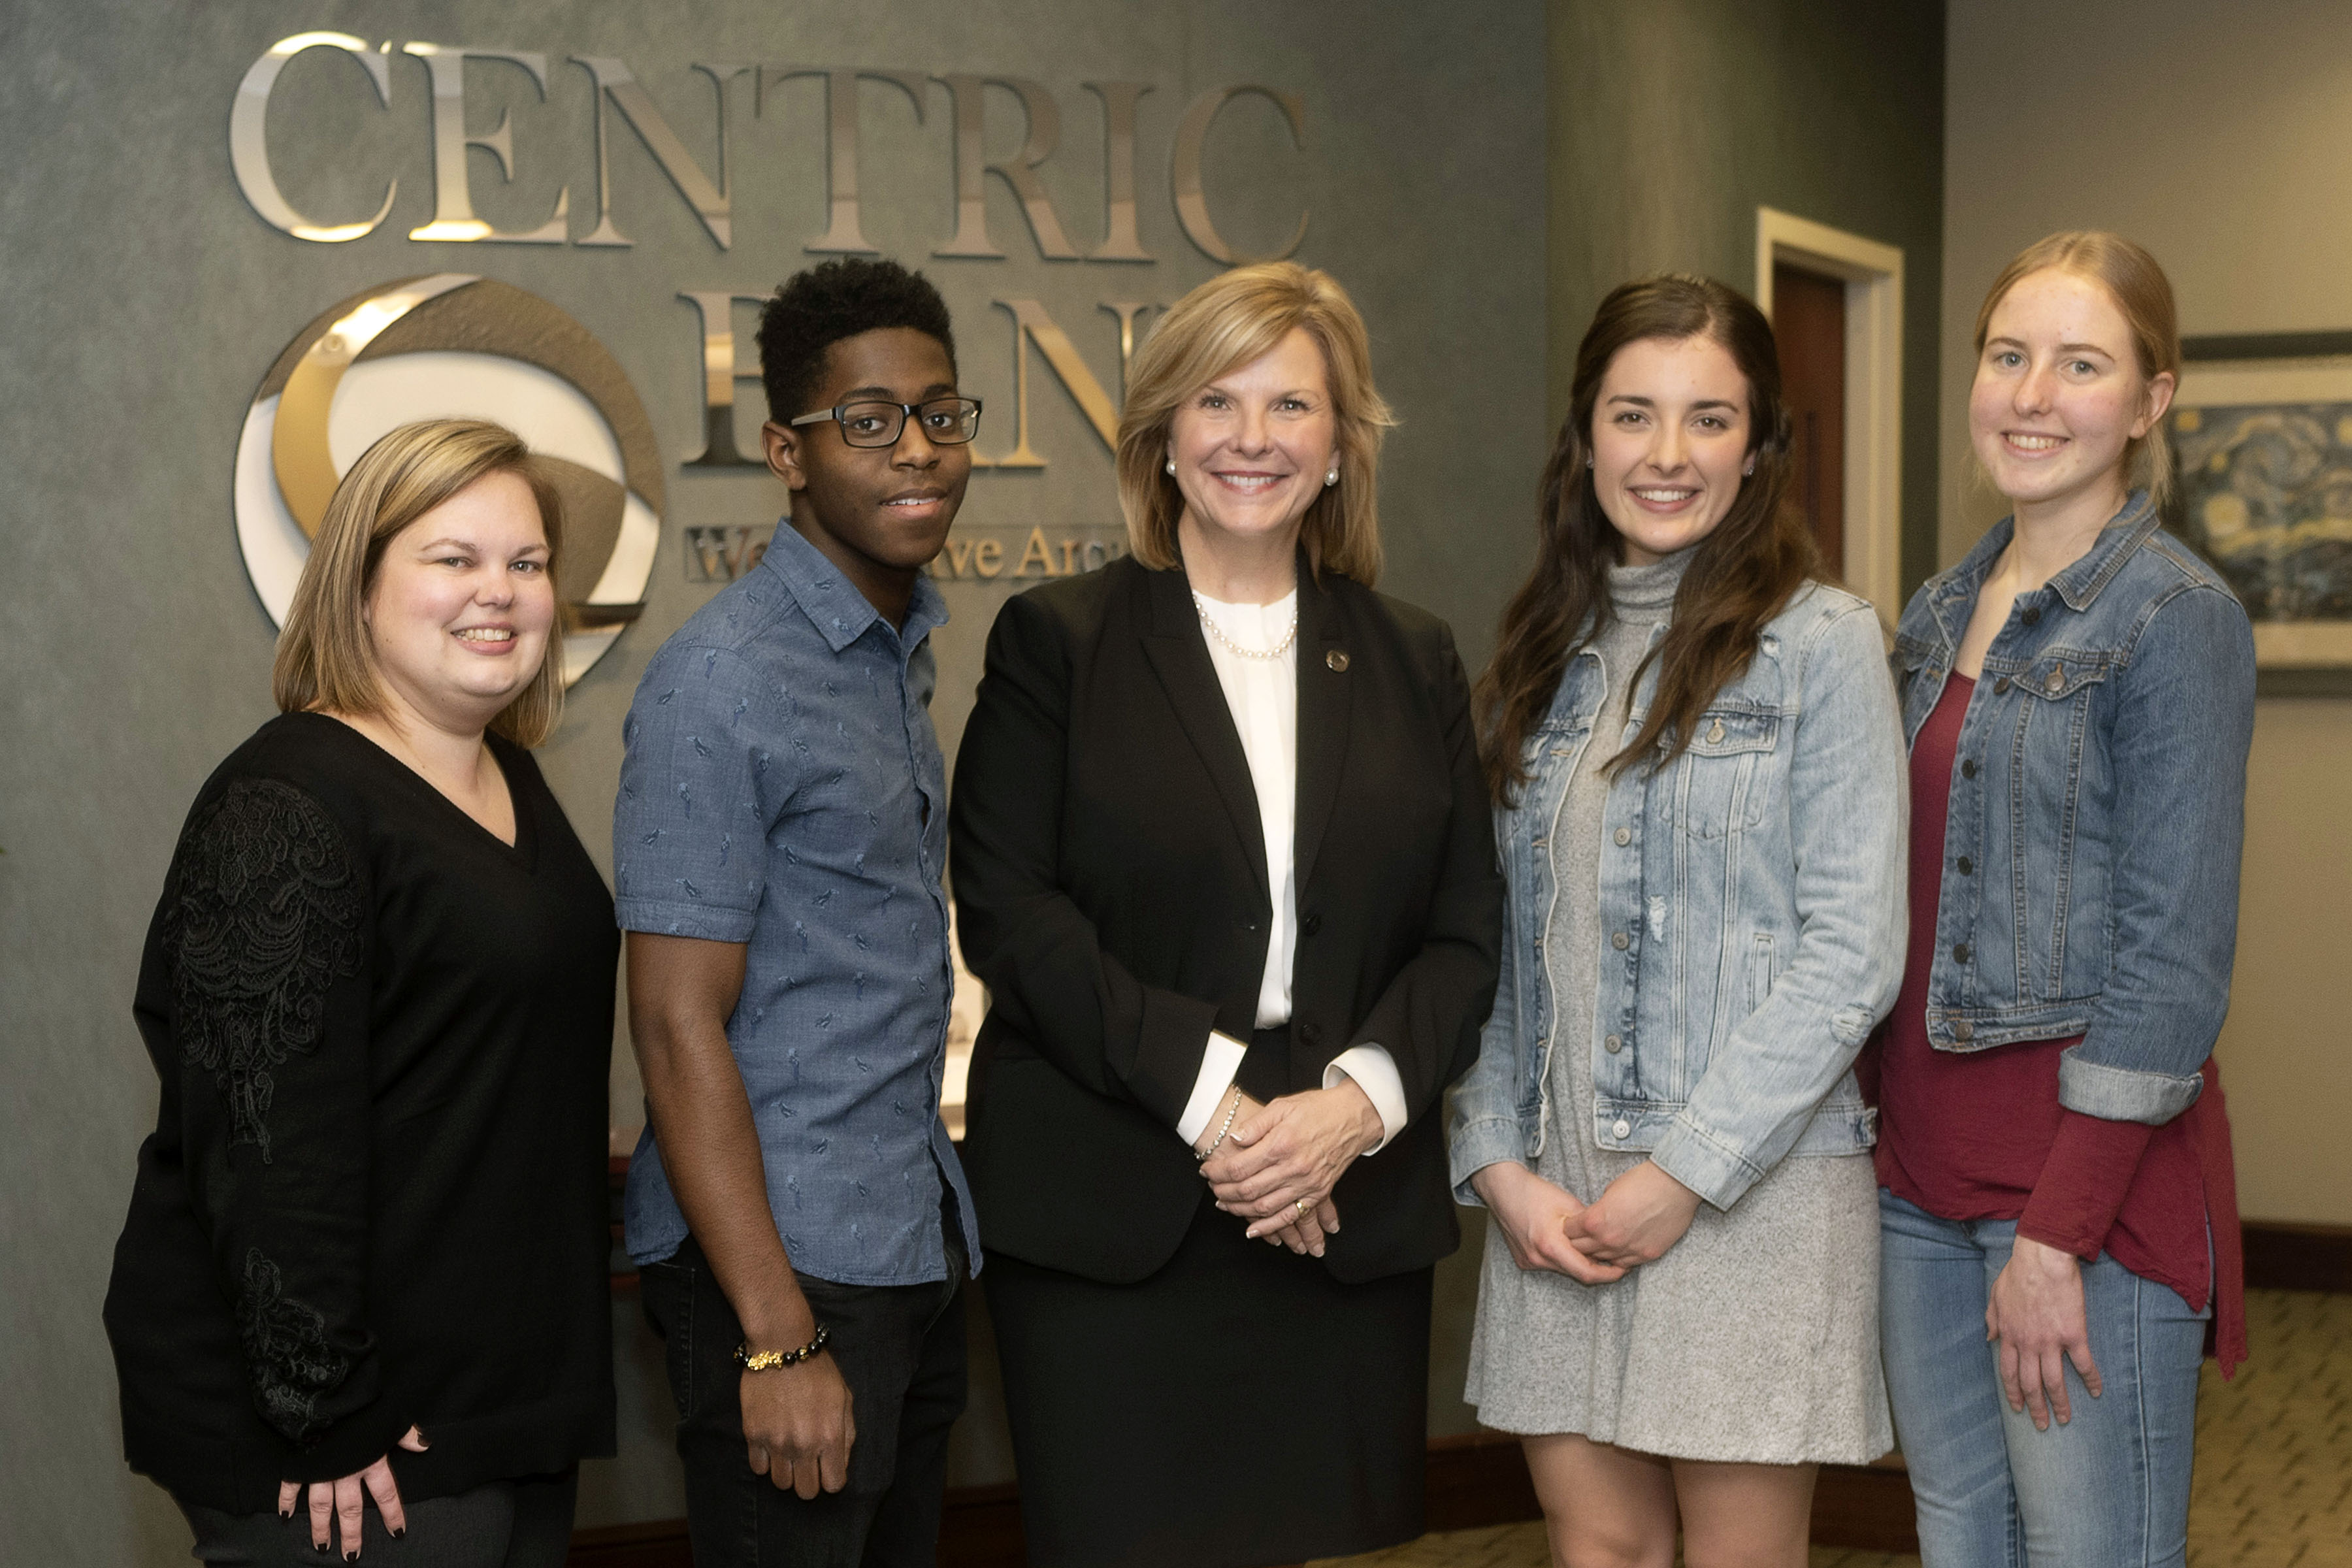 Centric Bank Offers Video Competition for Pennsylvania Students, Chance to Win Up to $5,000